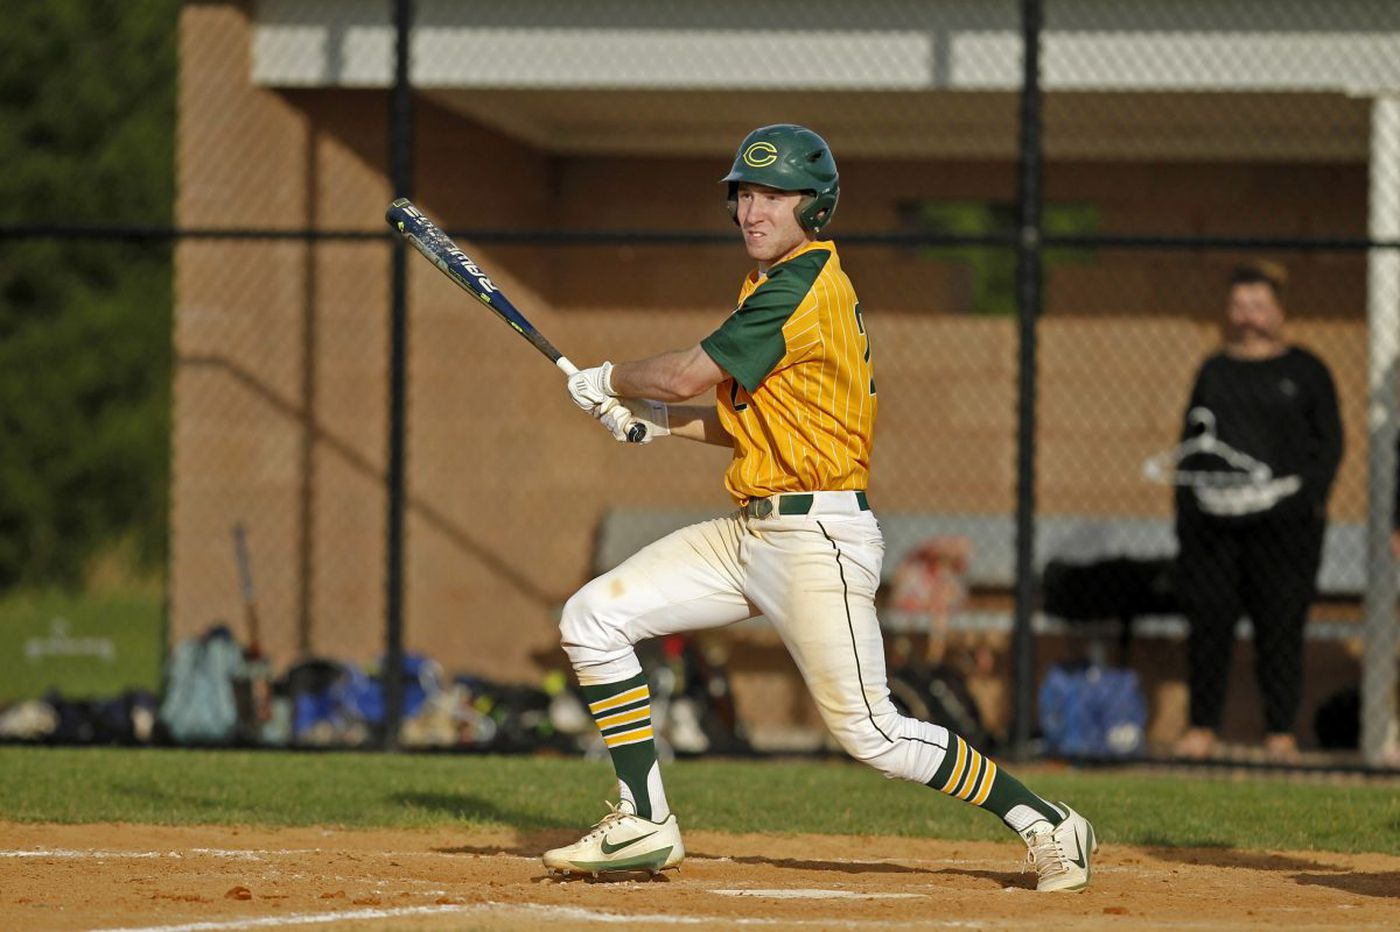 Monday's South Jersey roundup: Mike Decker hits walk-off single as Clearview beats Highland